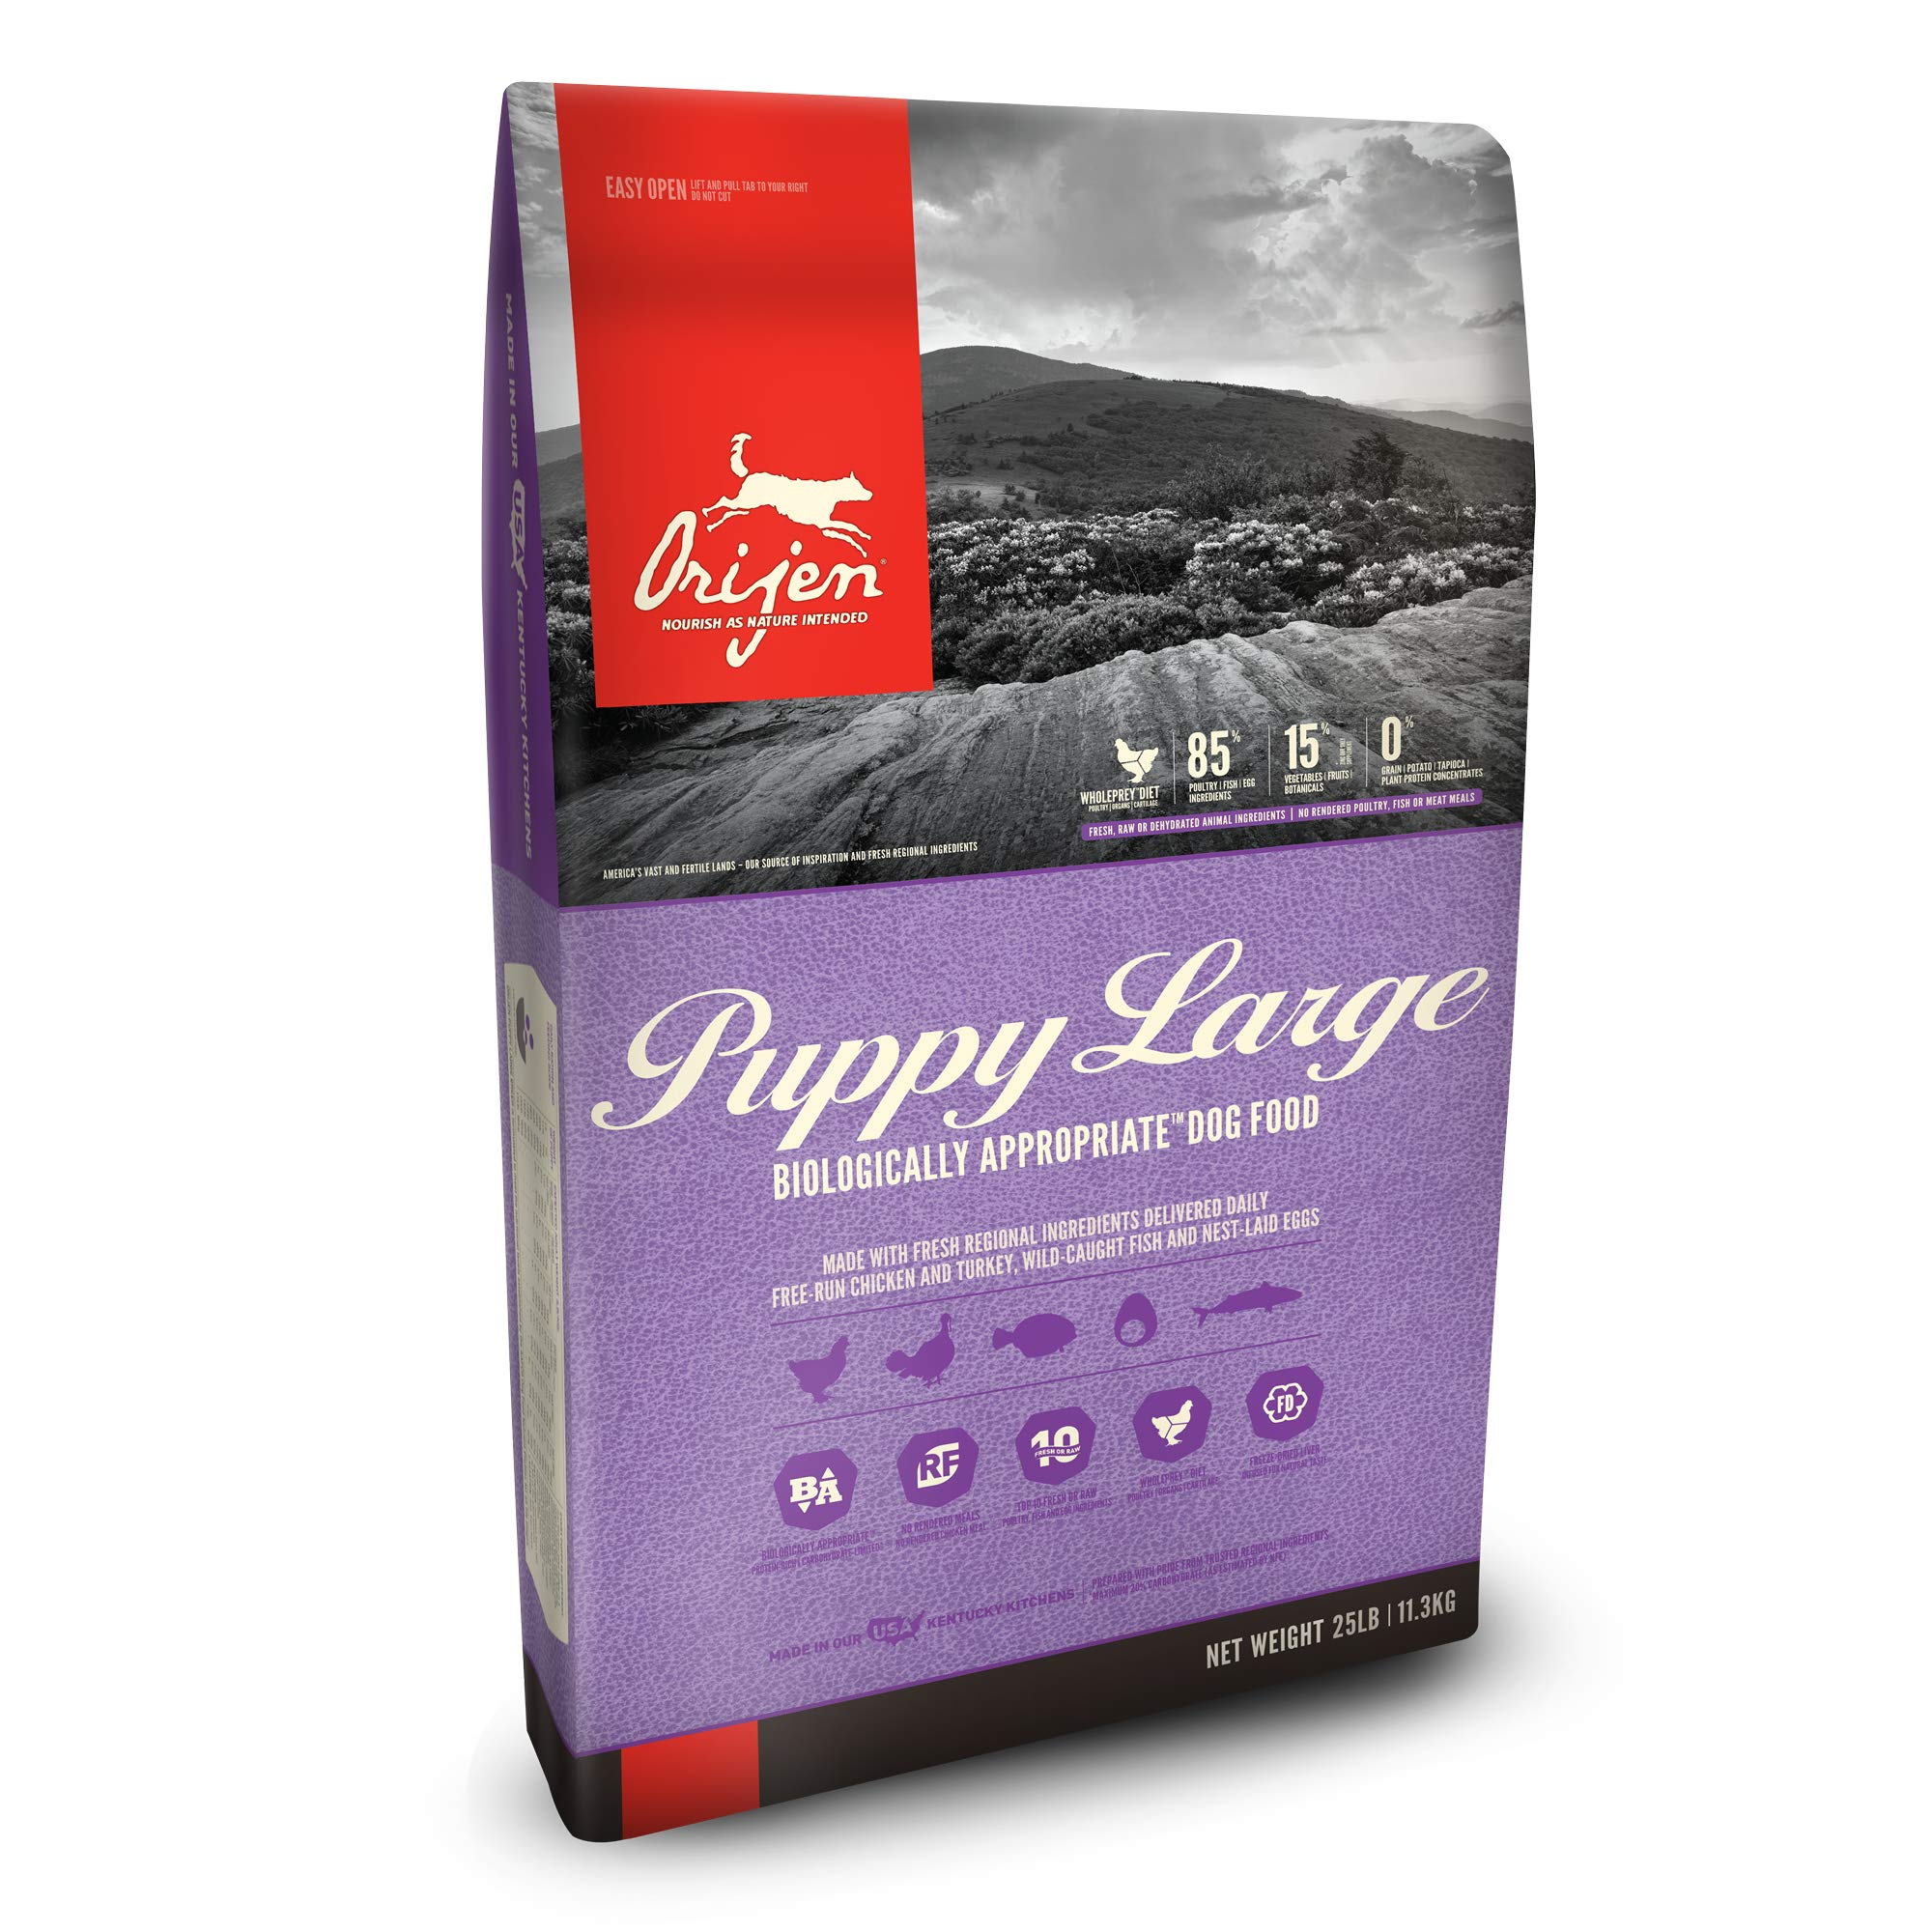 ORIJEN Dry Dog Food, Puppy Large, Biologically Appropriate & Grain Free